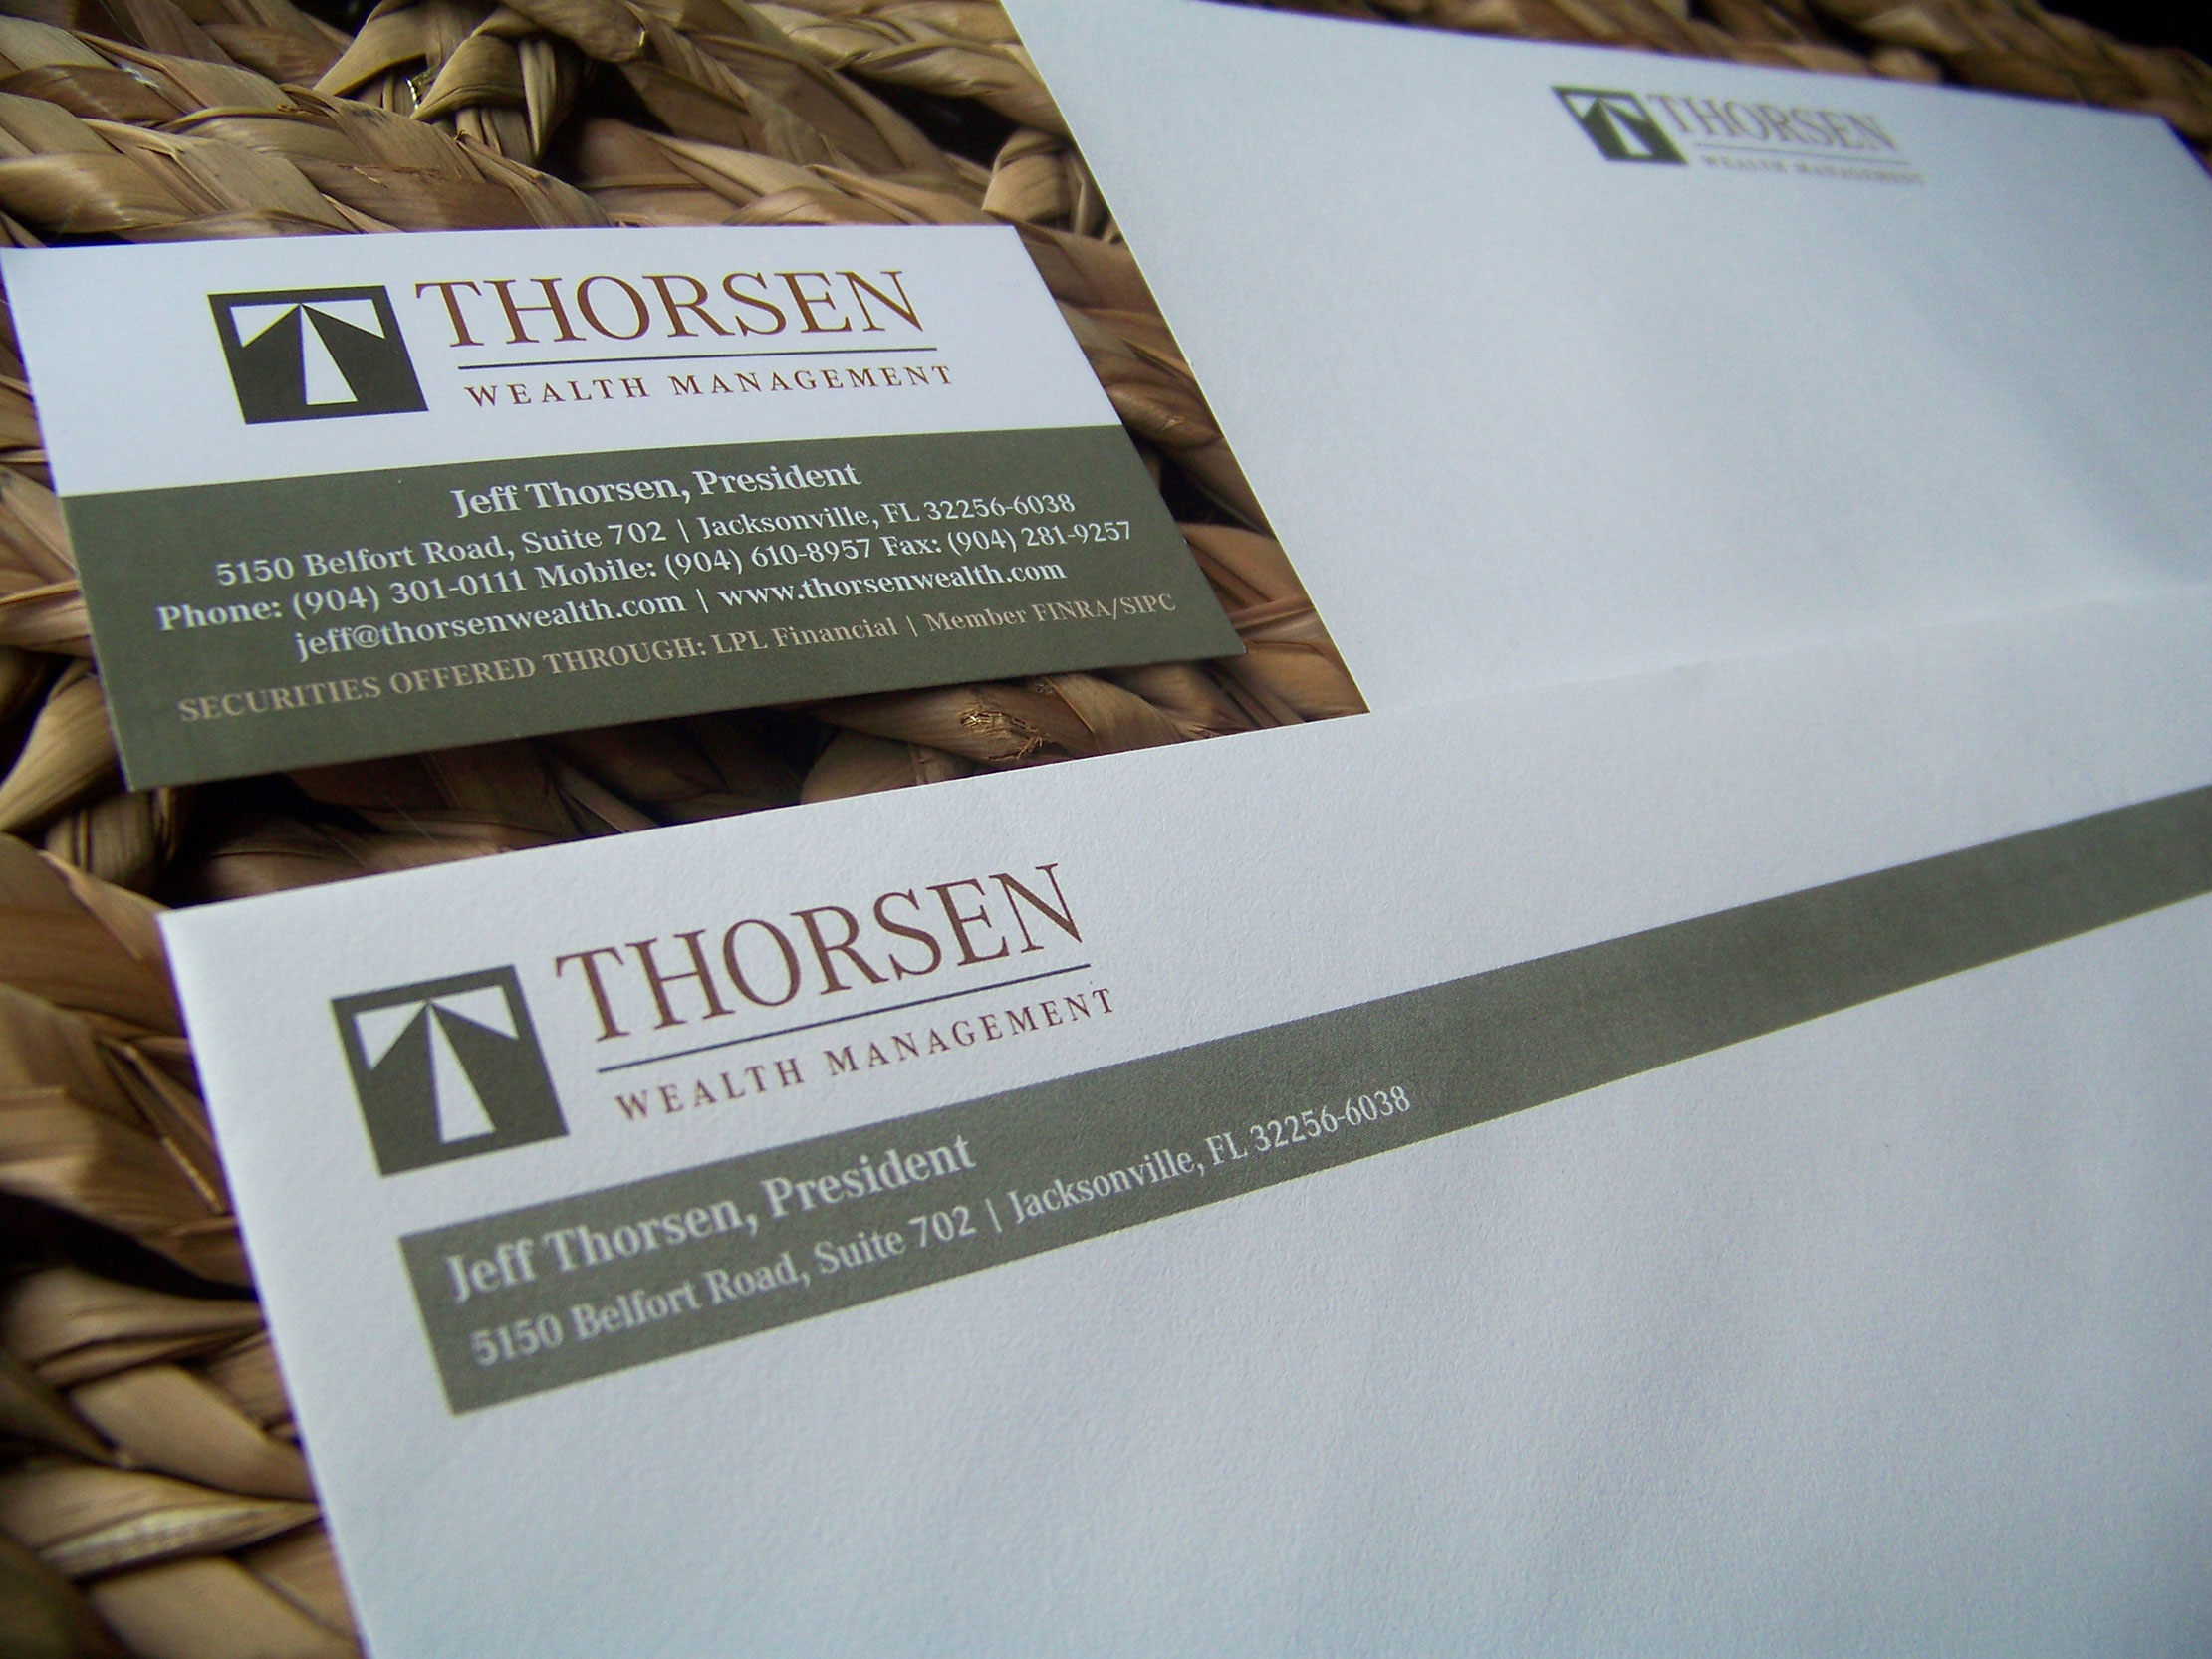 Thorsen Wealth Management Branding Stationery by Just Make Things